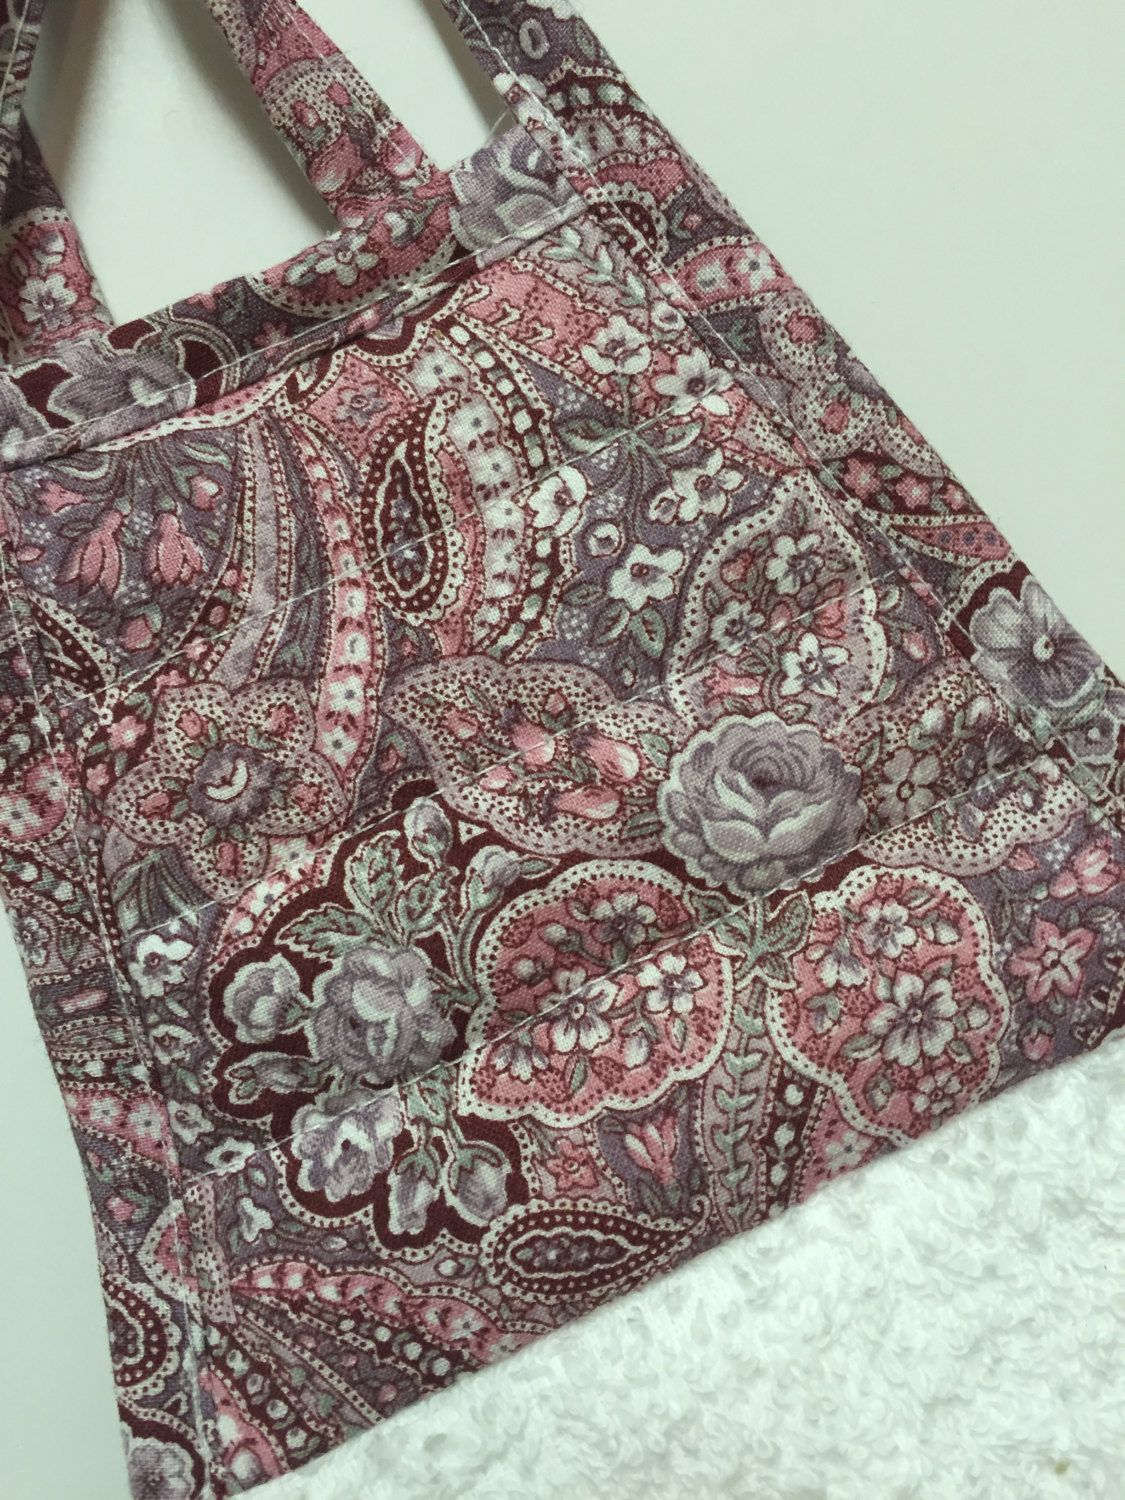 Paisley Kitchen Towel,Paisley Hand Towel,Flower Towel,Kitchen Decor,Hanging  Towel